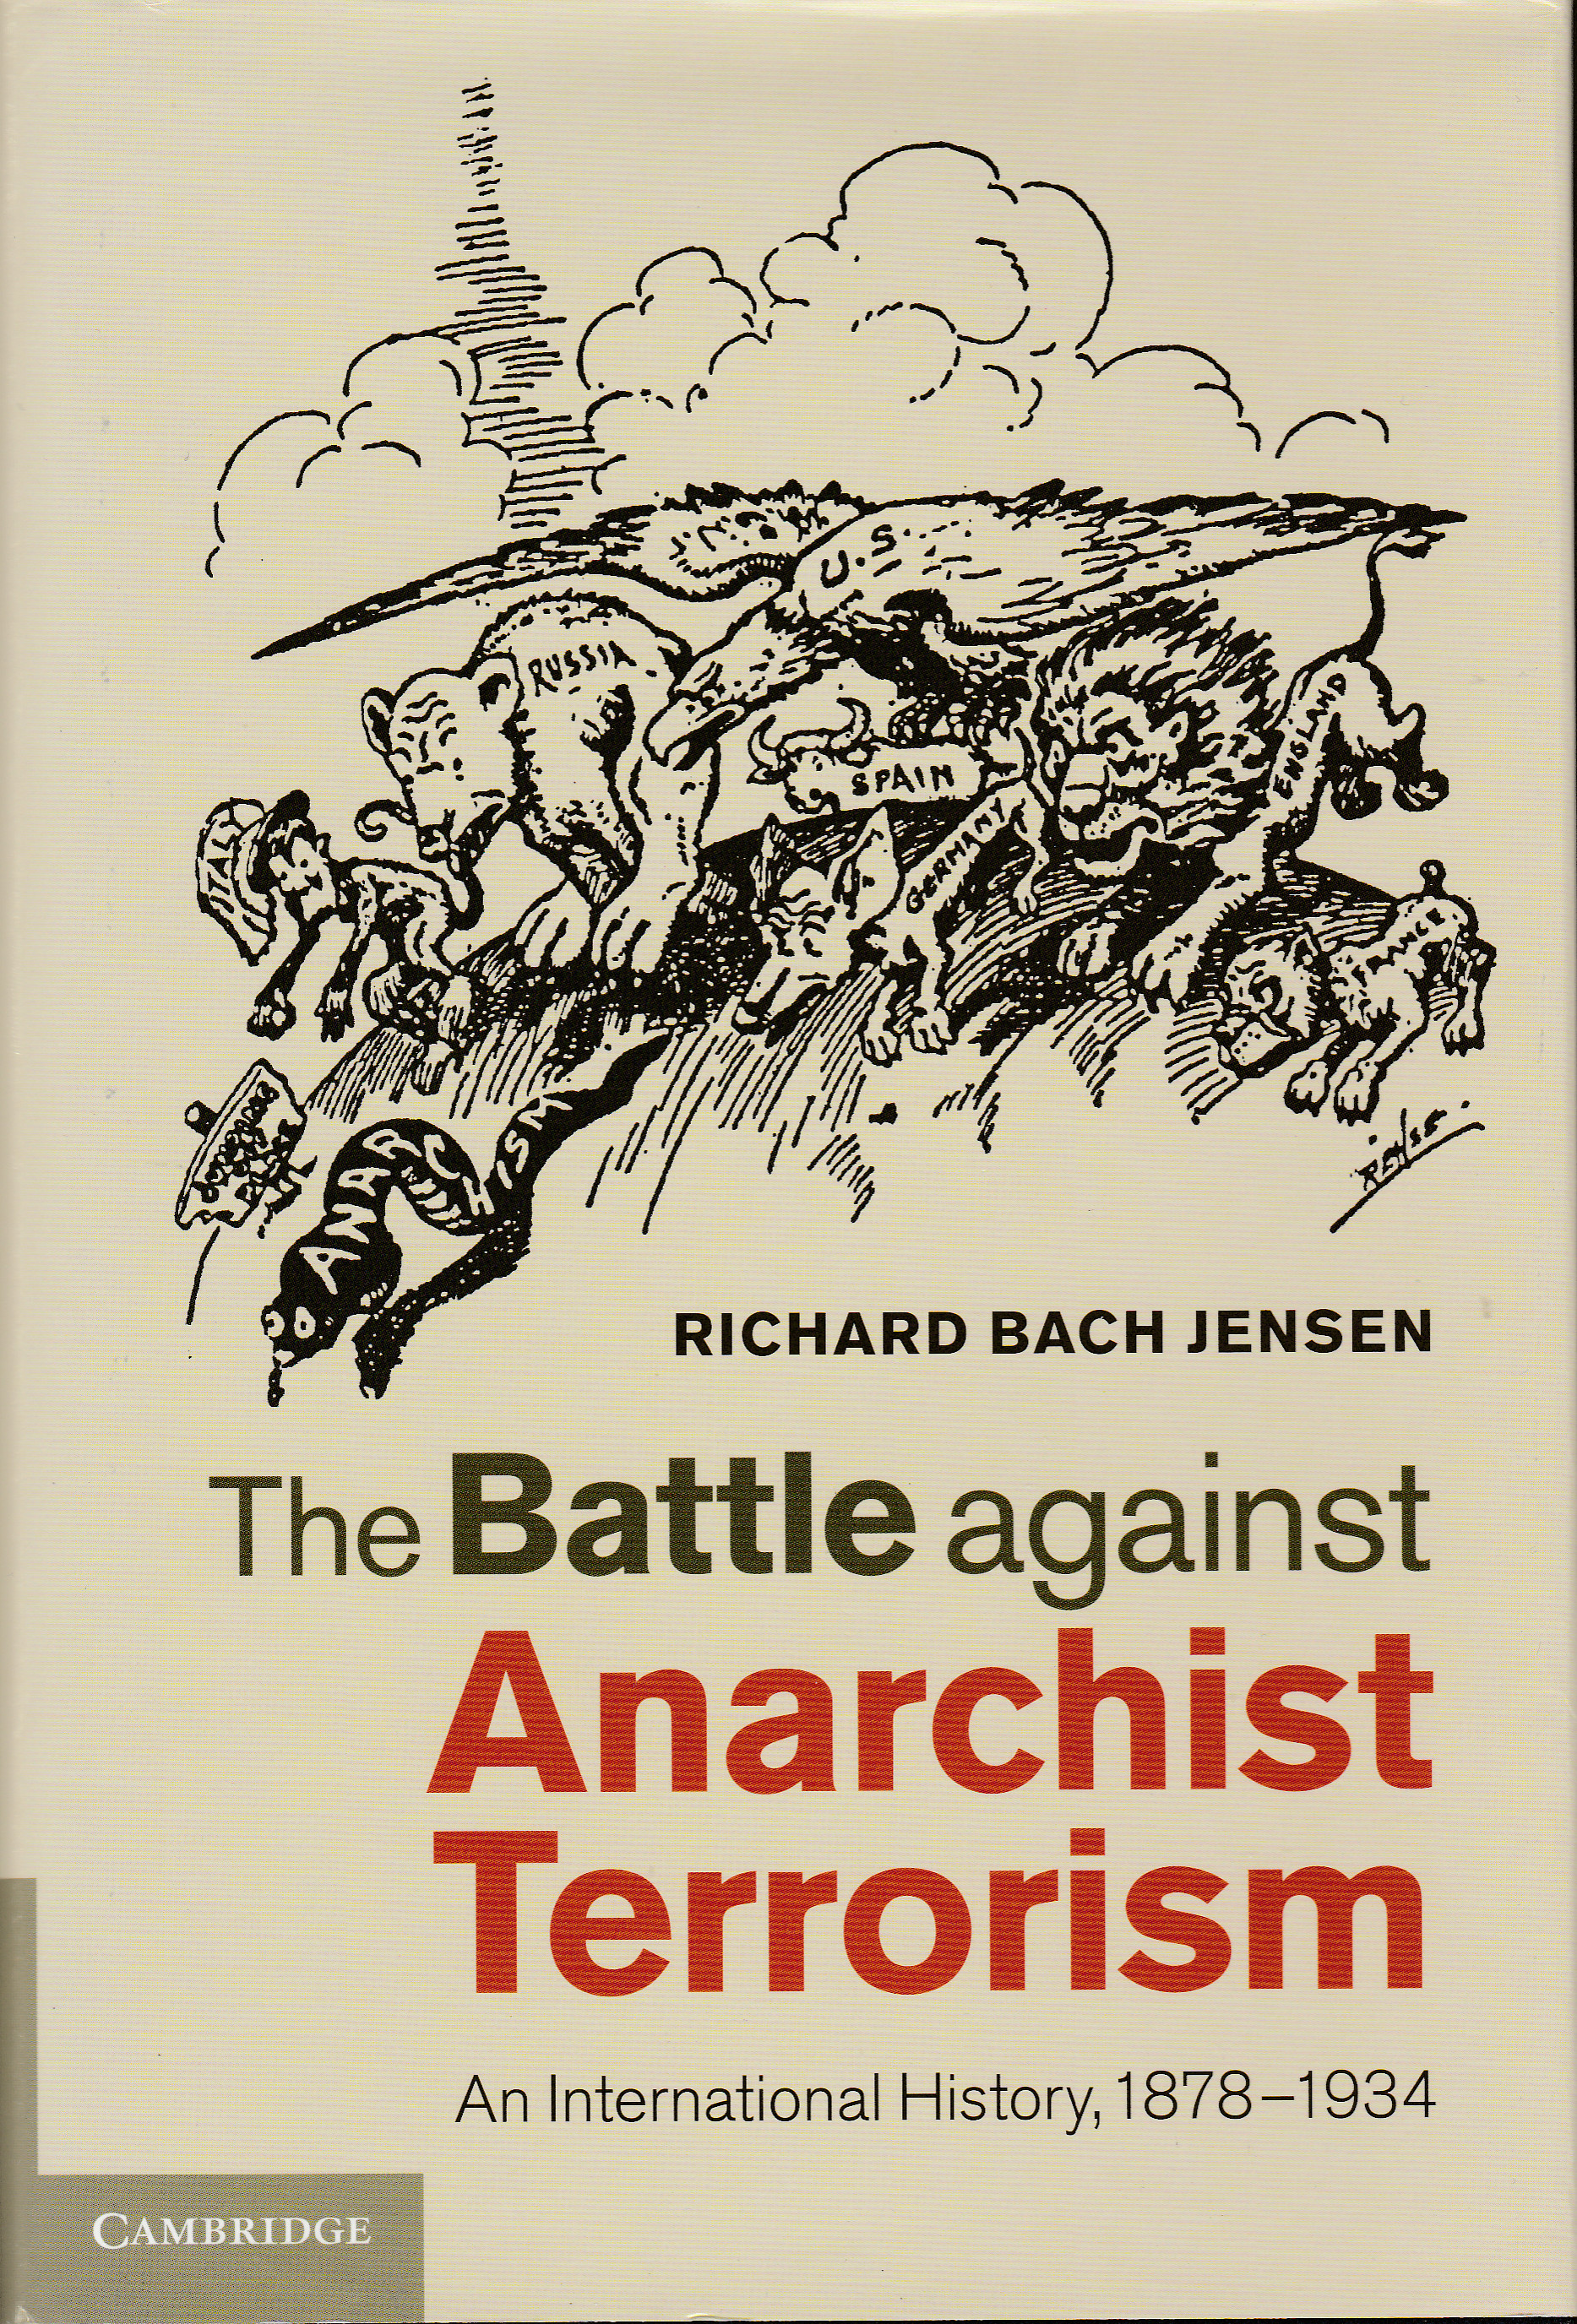 Richard Bach Jensen - The Battle Against Anarchist Terrorism (Cambridge University Press, 2014)